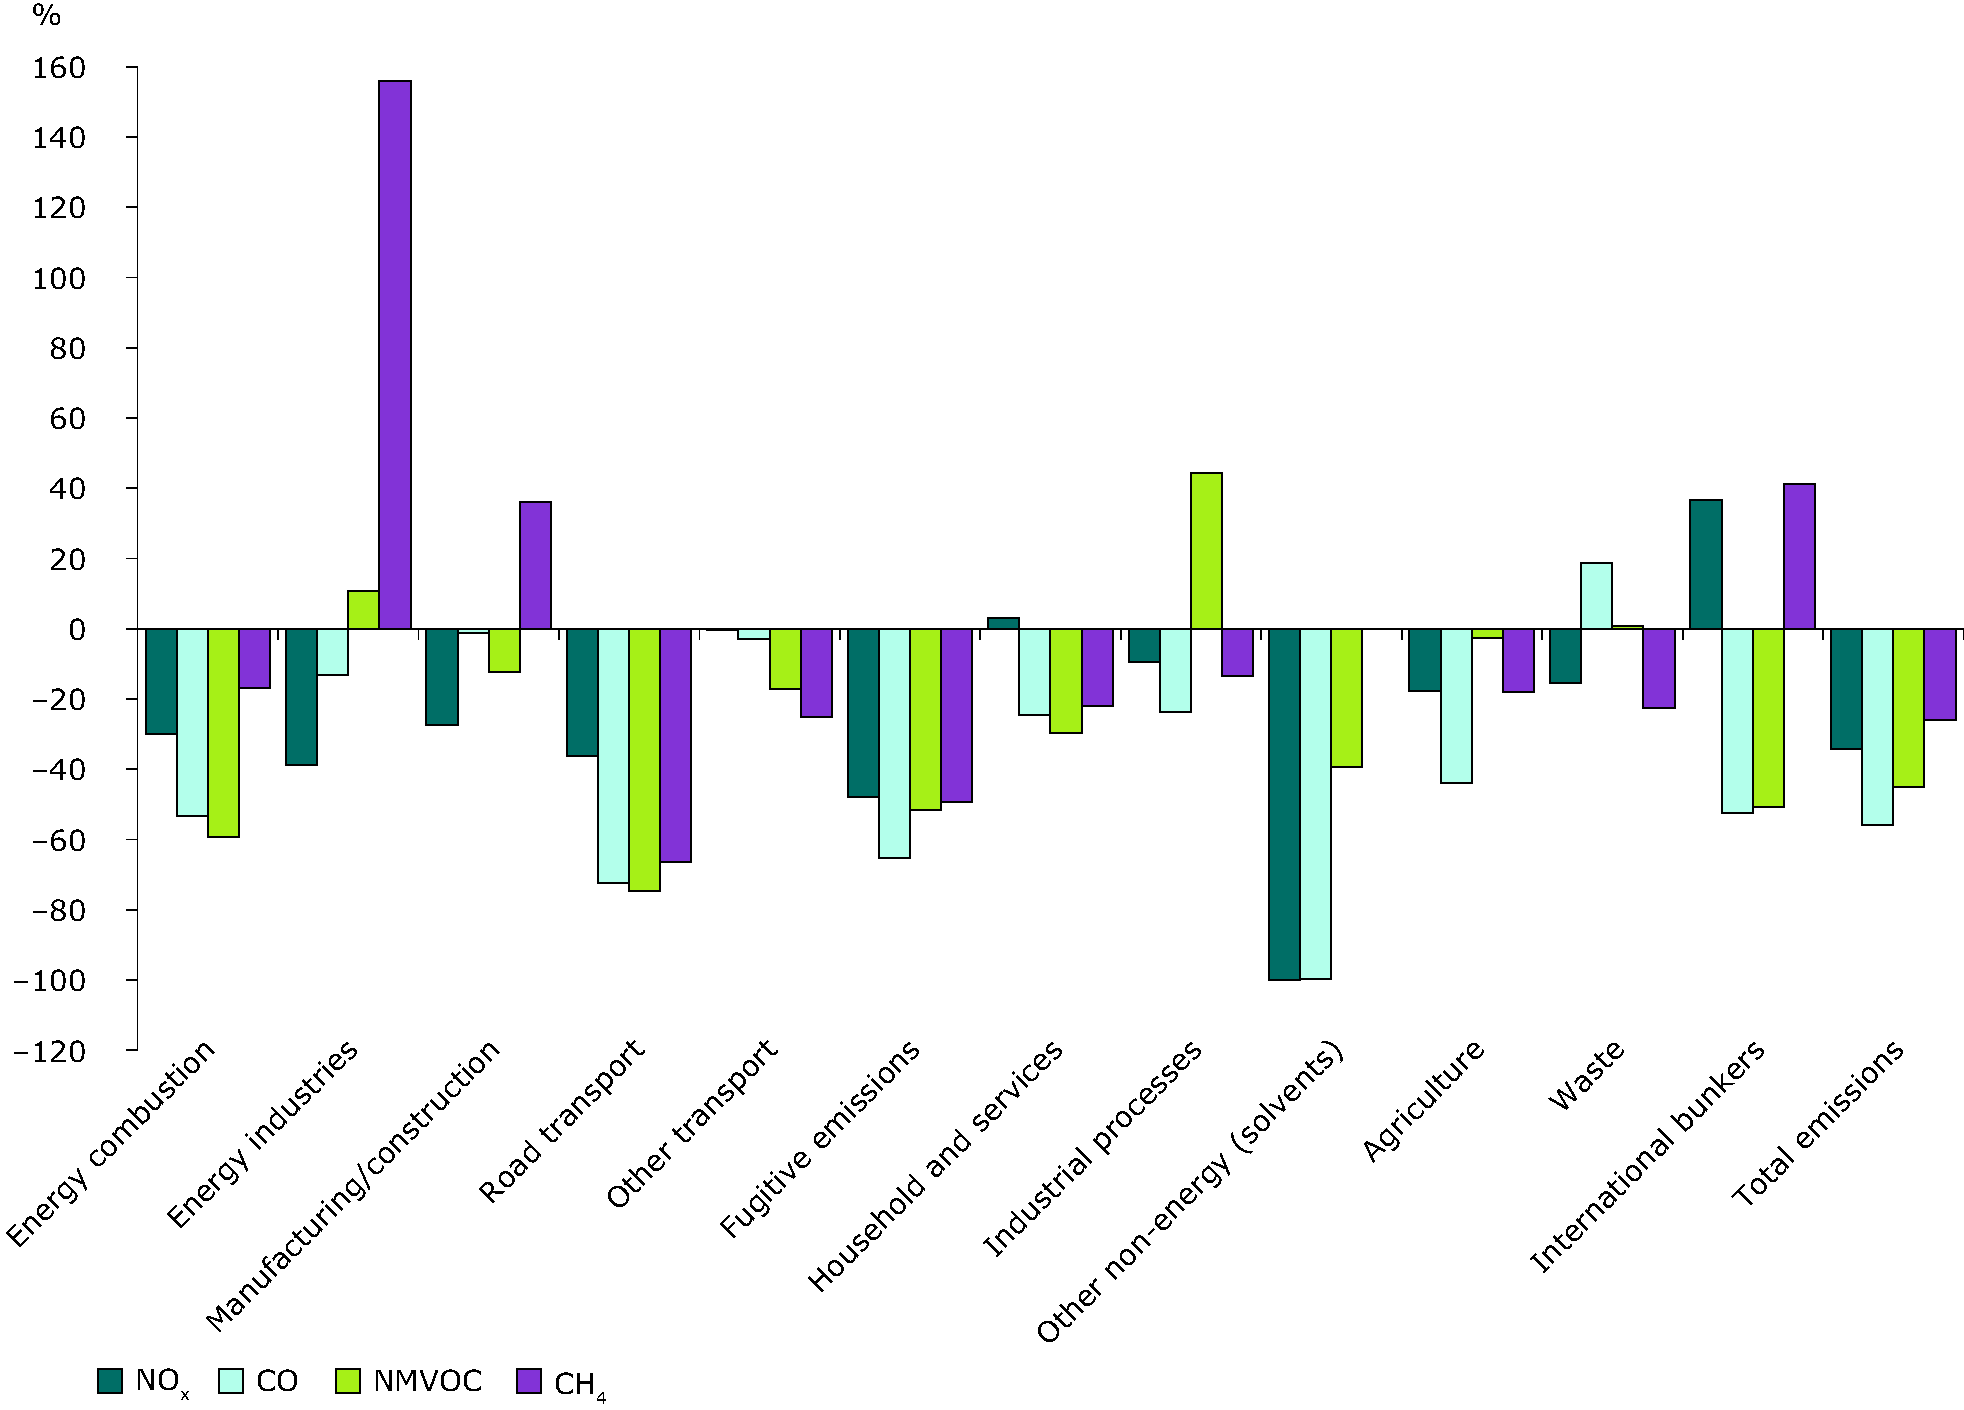 Changes (%) in emissions of ozone precursors by source category, 1990-2008, EEA-32